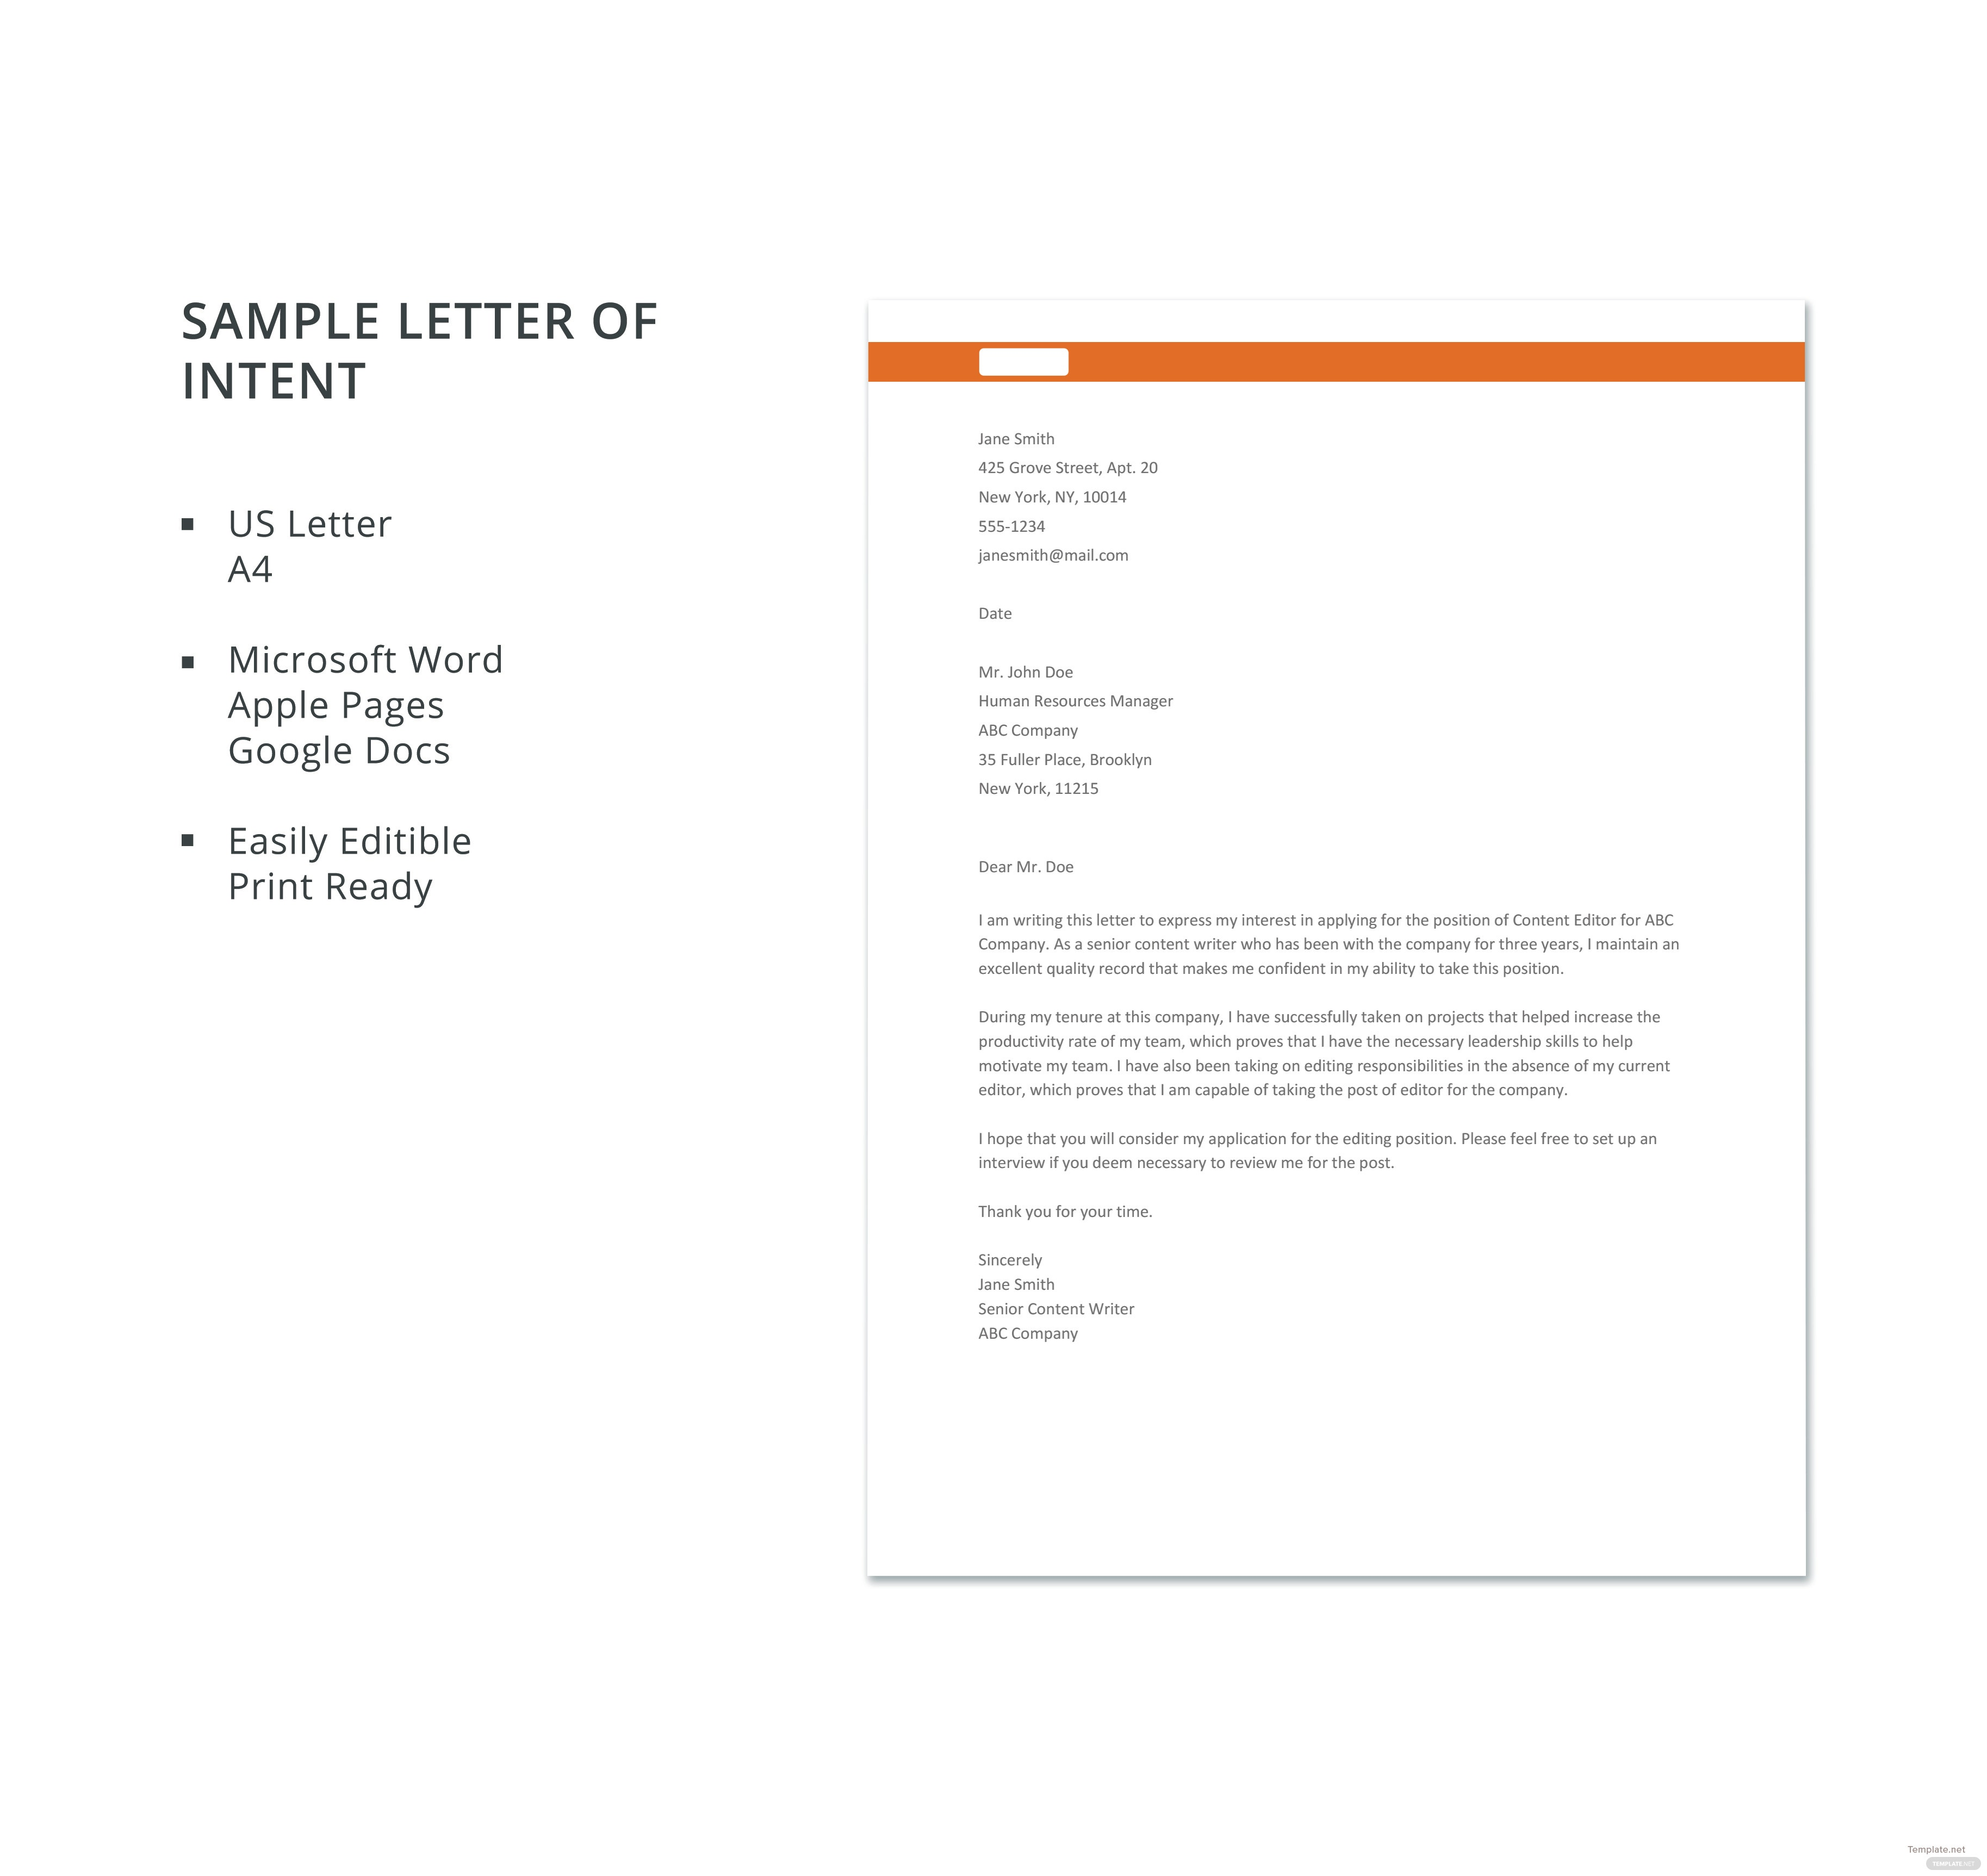 Sample letter of intent in microsoft word apple pages google docs click on image to expand reduce sample letter of intent spiritdancerdesigns Choice Image